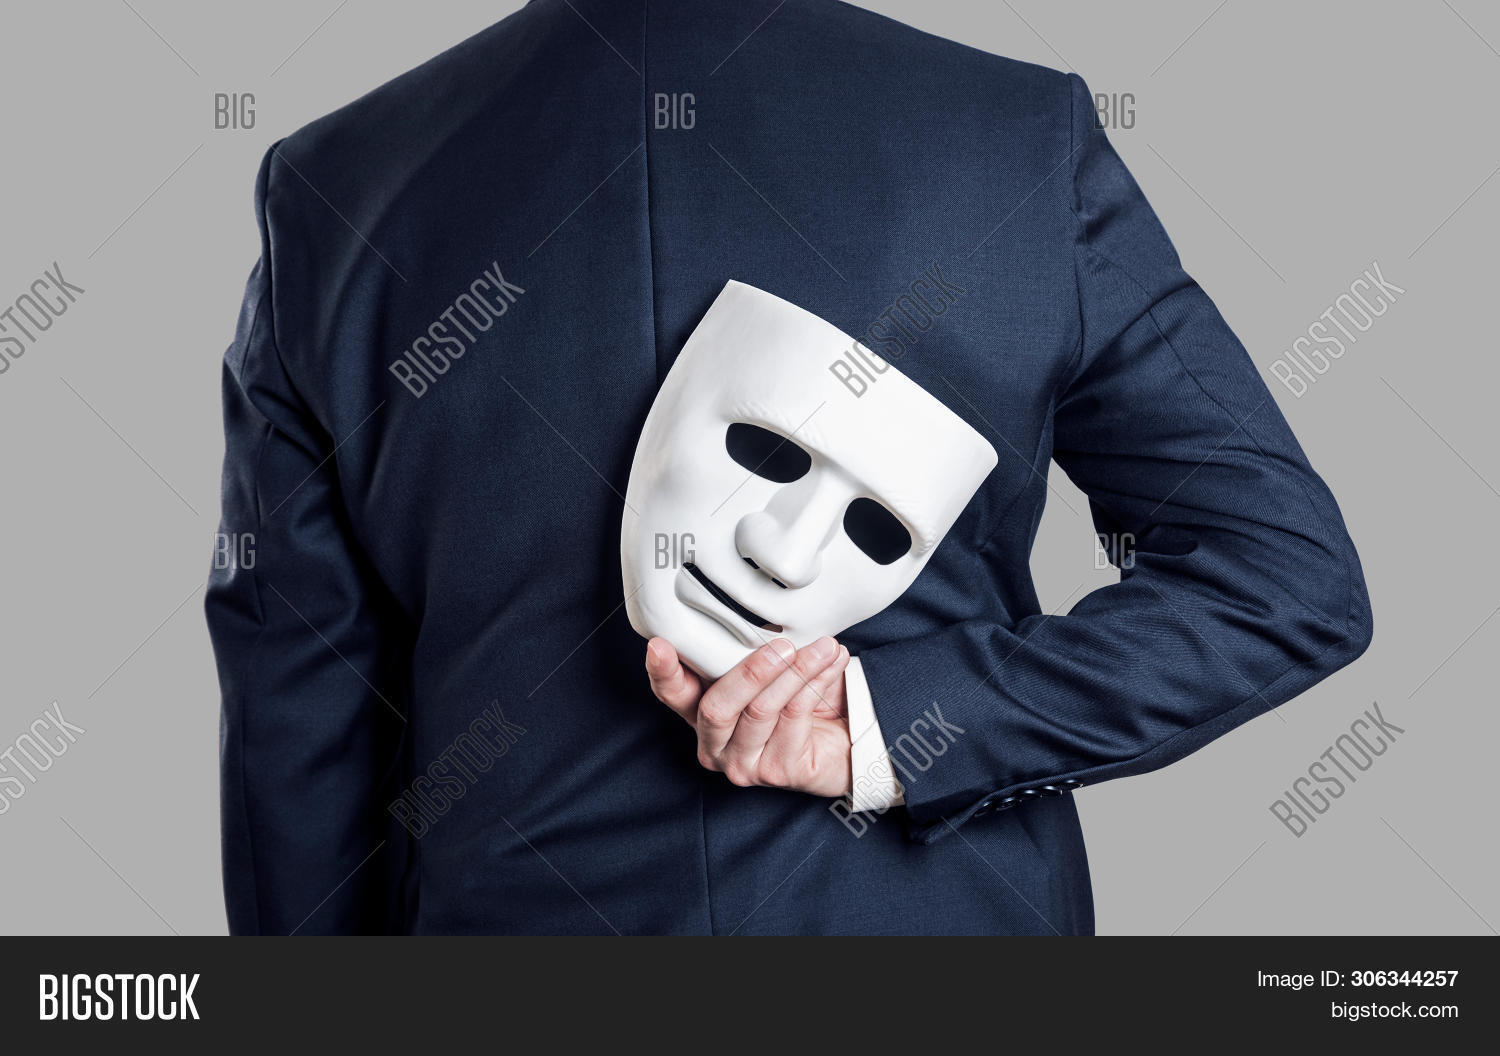 bad,bandit,betray,burglar,business,businessman,cheating,concept,crime,criminal,disguise,dishonest,double,employee,face,fake,false,fictitious,fraud,fraudster,fraudulent,guy,hacker,hide,holding,hypocrite,immoral,impostor,isolated,lie,male,man,mask,partner,partnership,people,person,robber,secret,sham,spy,suit,thief,tricky,unethical,unfair,untrue,white,young